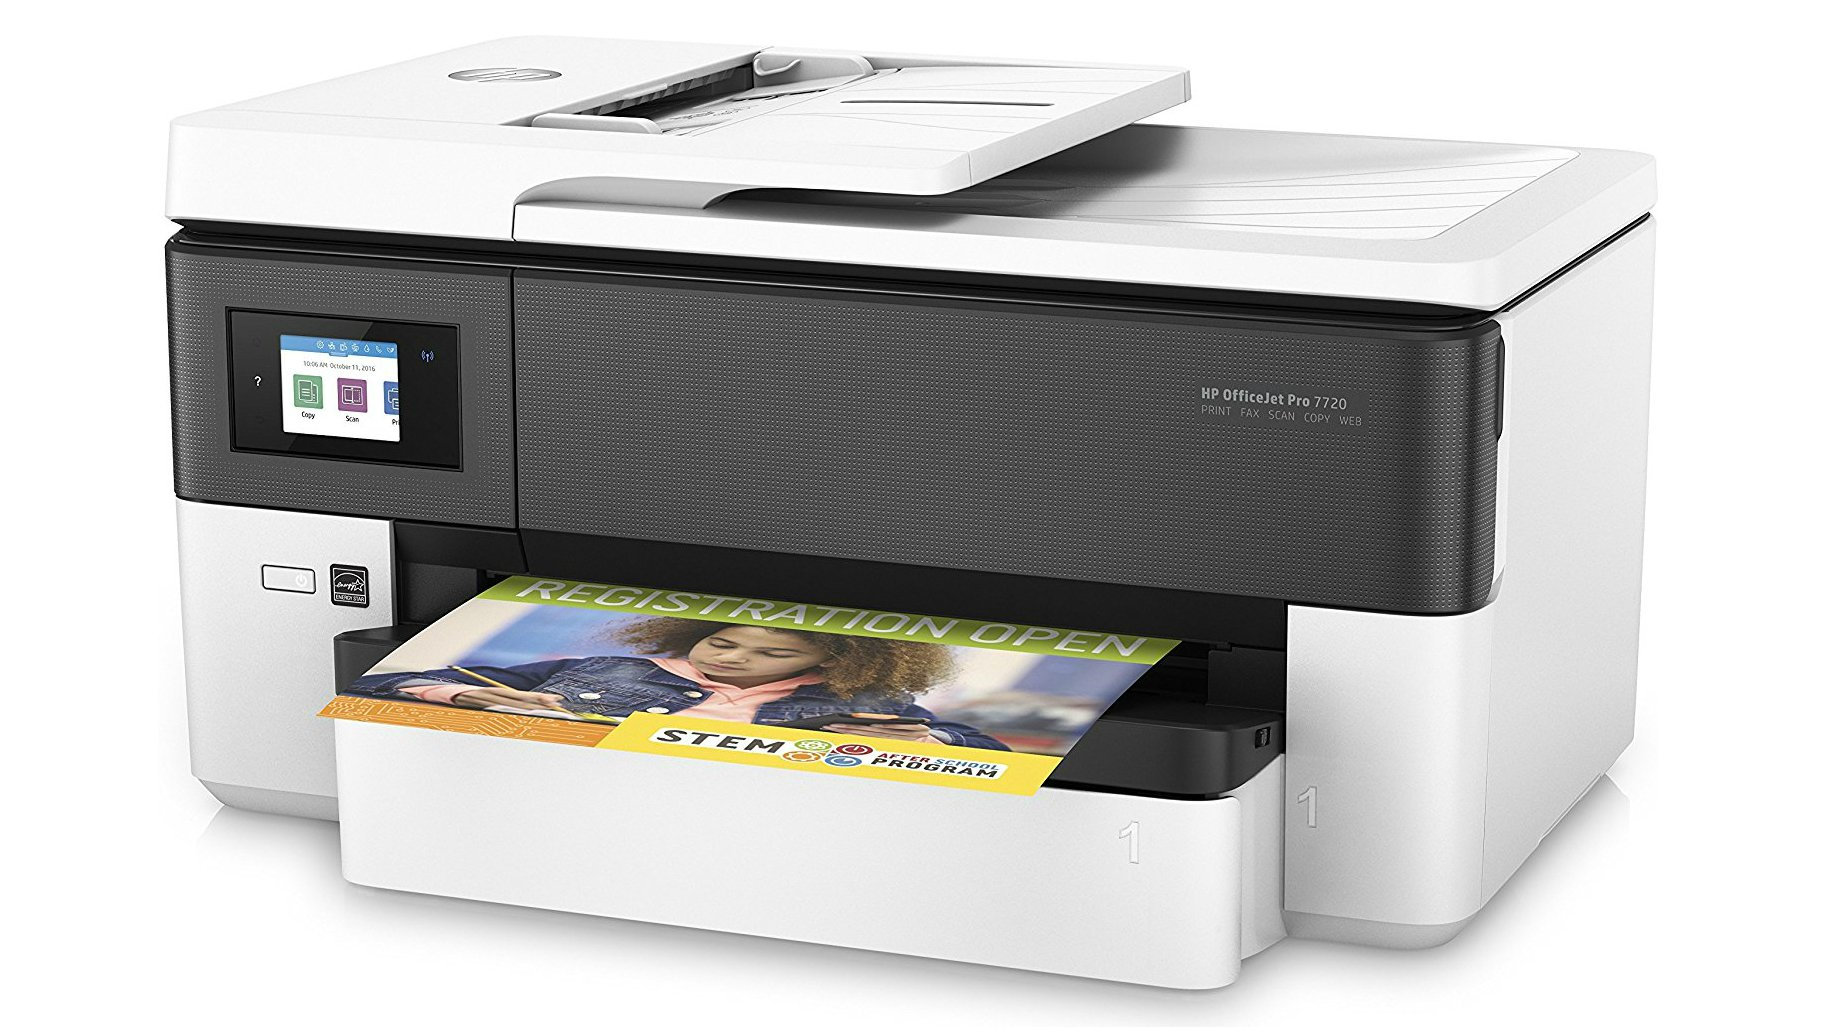 Best printer 2019: Inkjet and laser printers for super-sharp